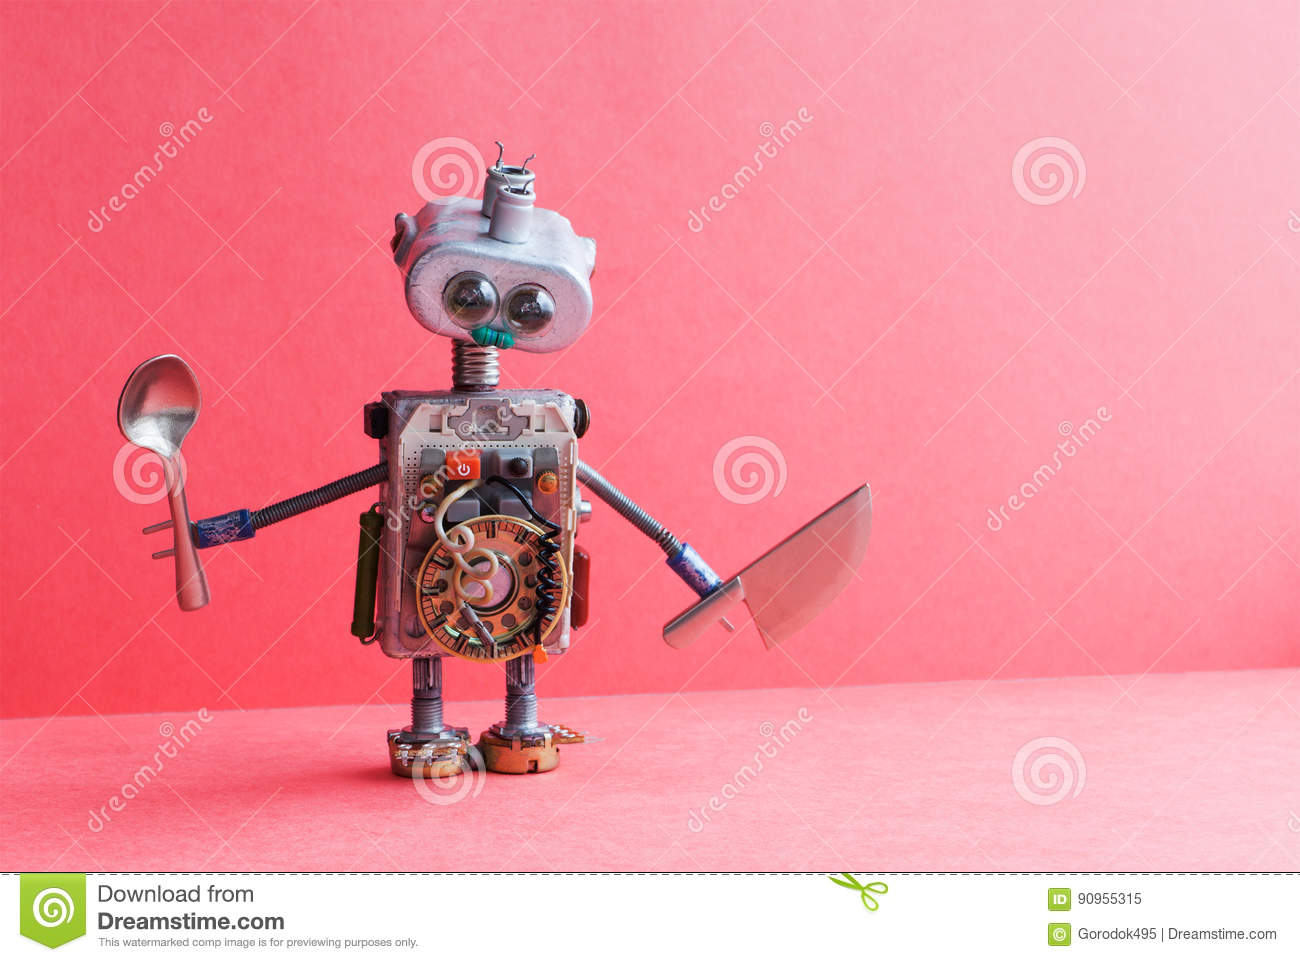 A Kitchen With Vintage Character: Mechanical Kitchen Chef Robot Knife Spoon. Funny Toy